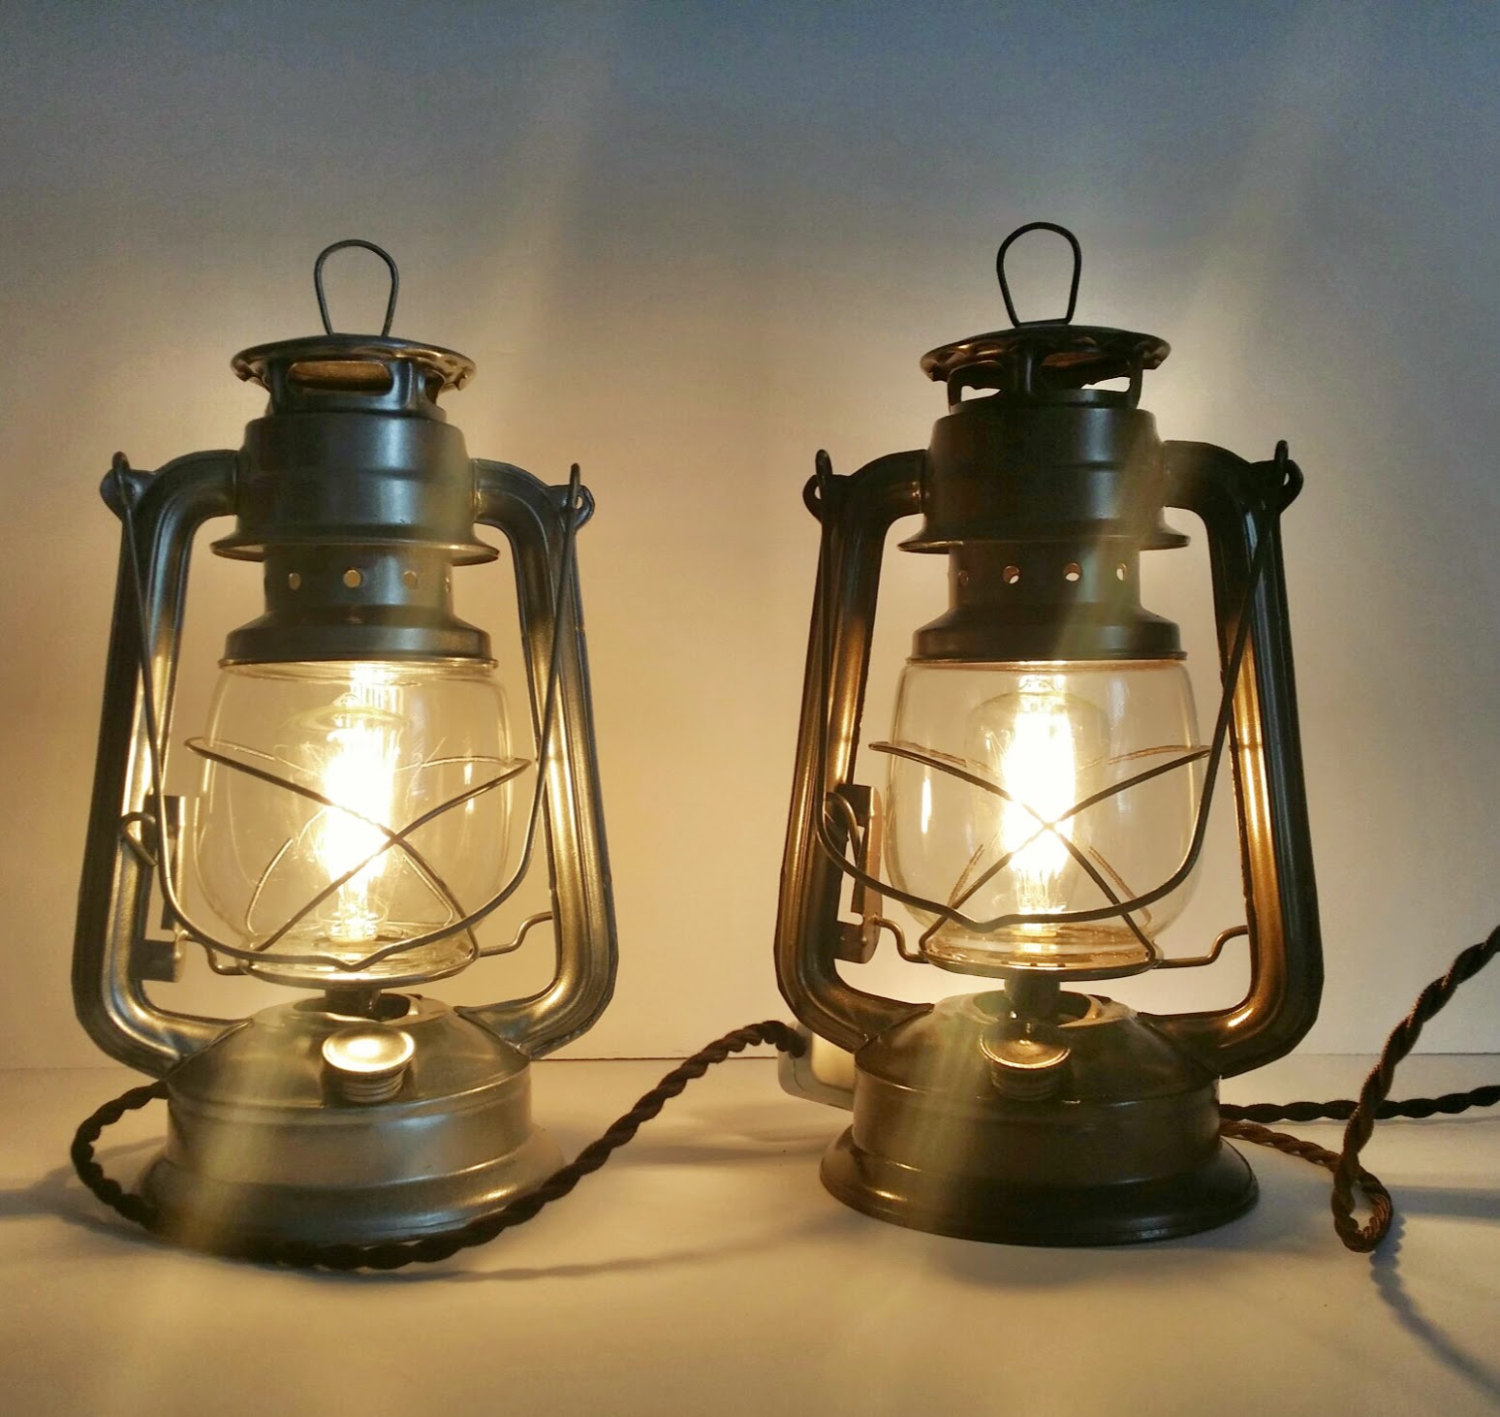 Illuminate Your Rooms With The Antique Shades From Rustic Desk Lamps